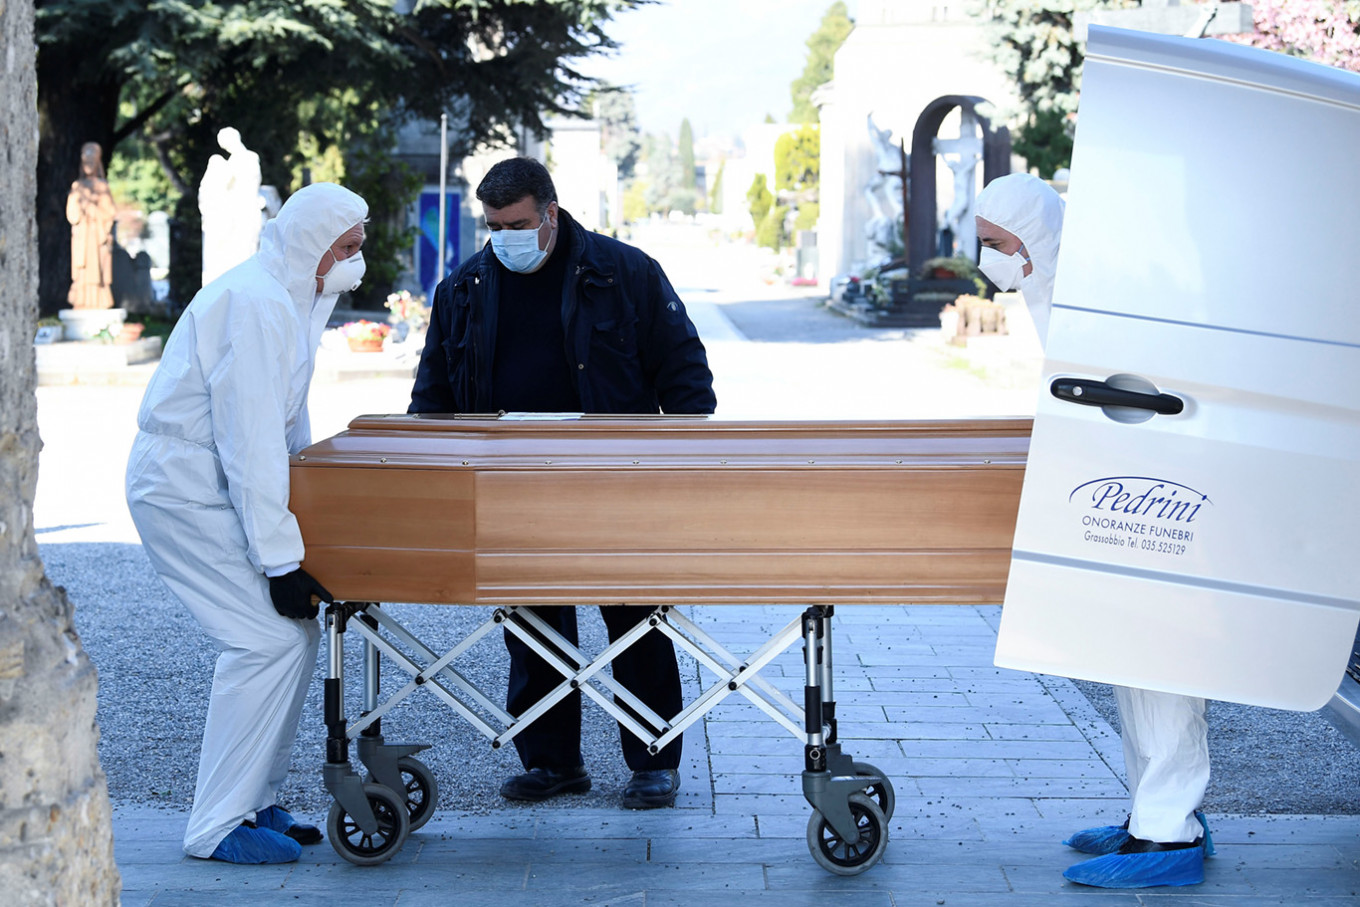 In Italy deaths from coronavirus buries army